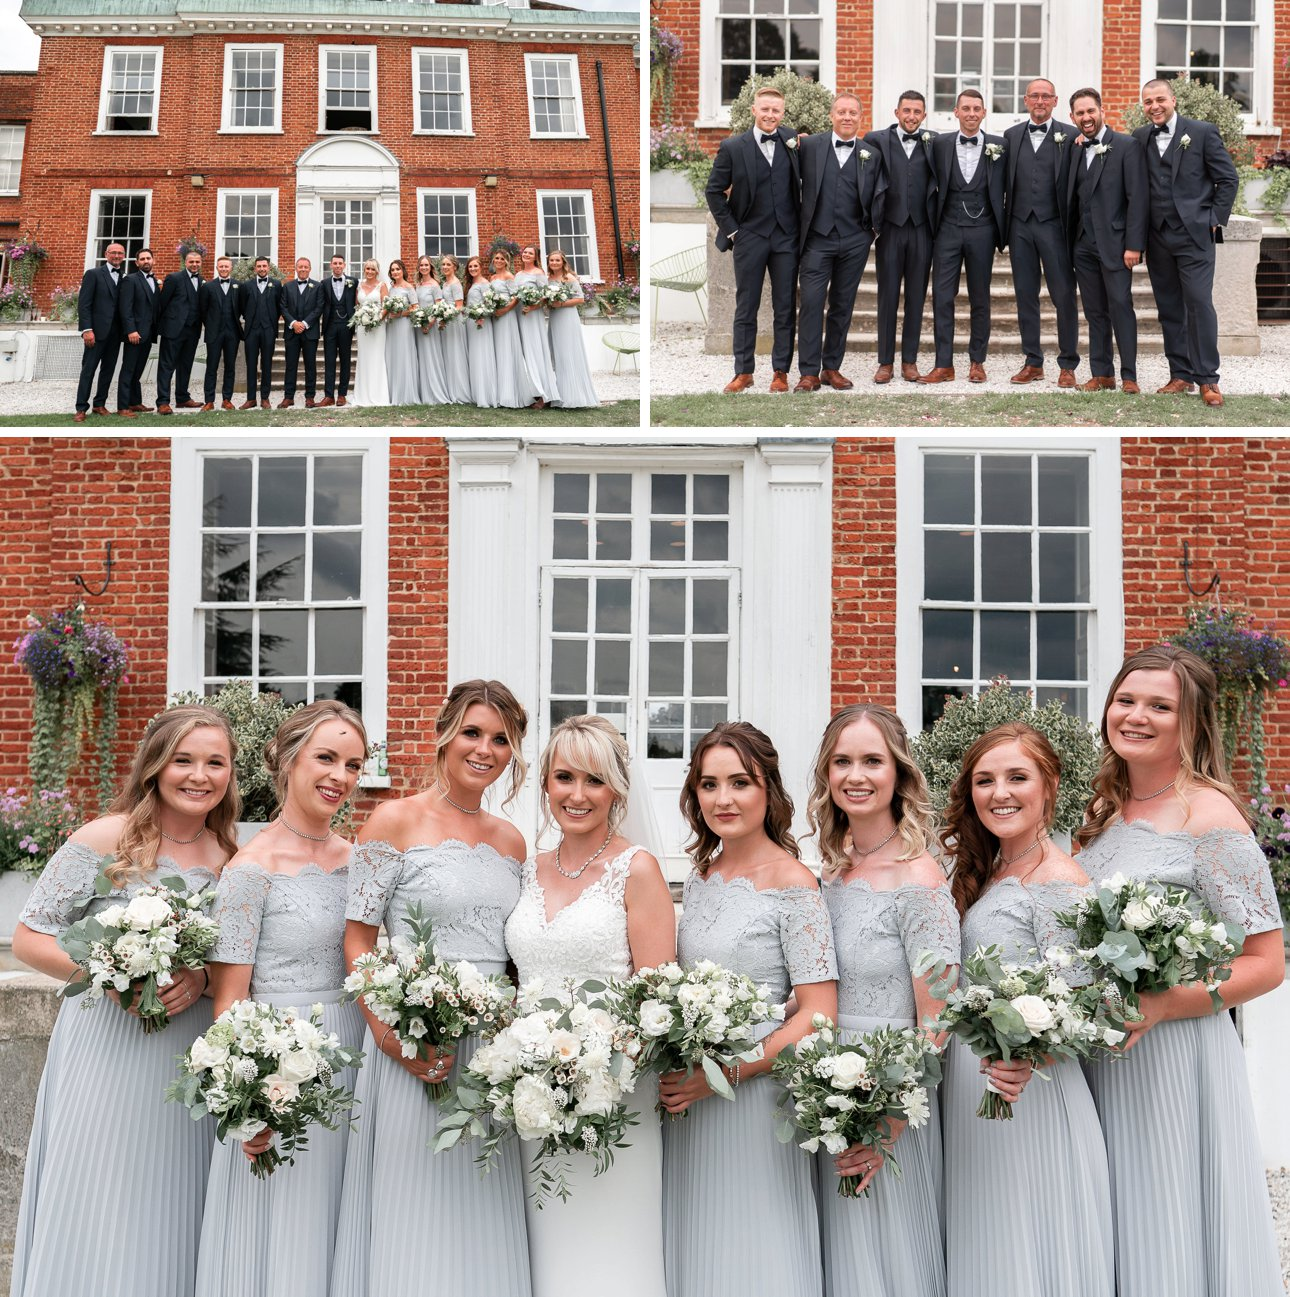 Bridesmaids in blue pleated dresses and groomsmen in bow ties pose for group wedding photos at Stoke Place Slough.